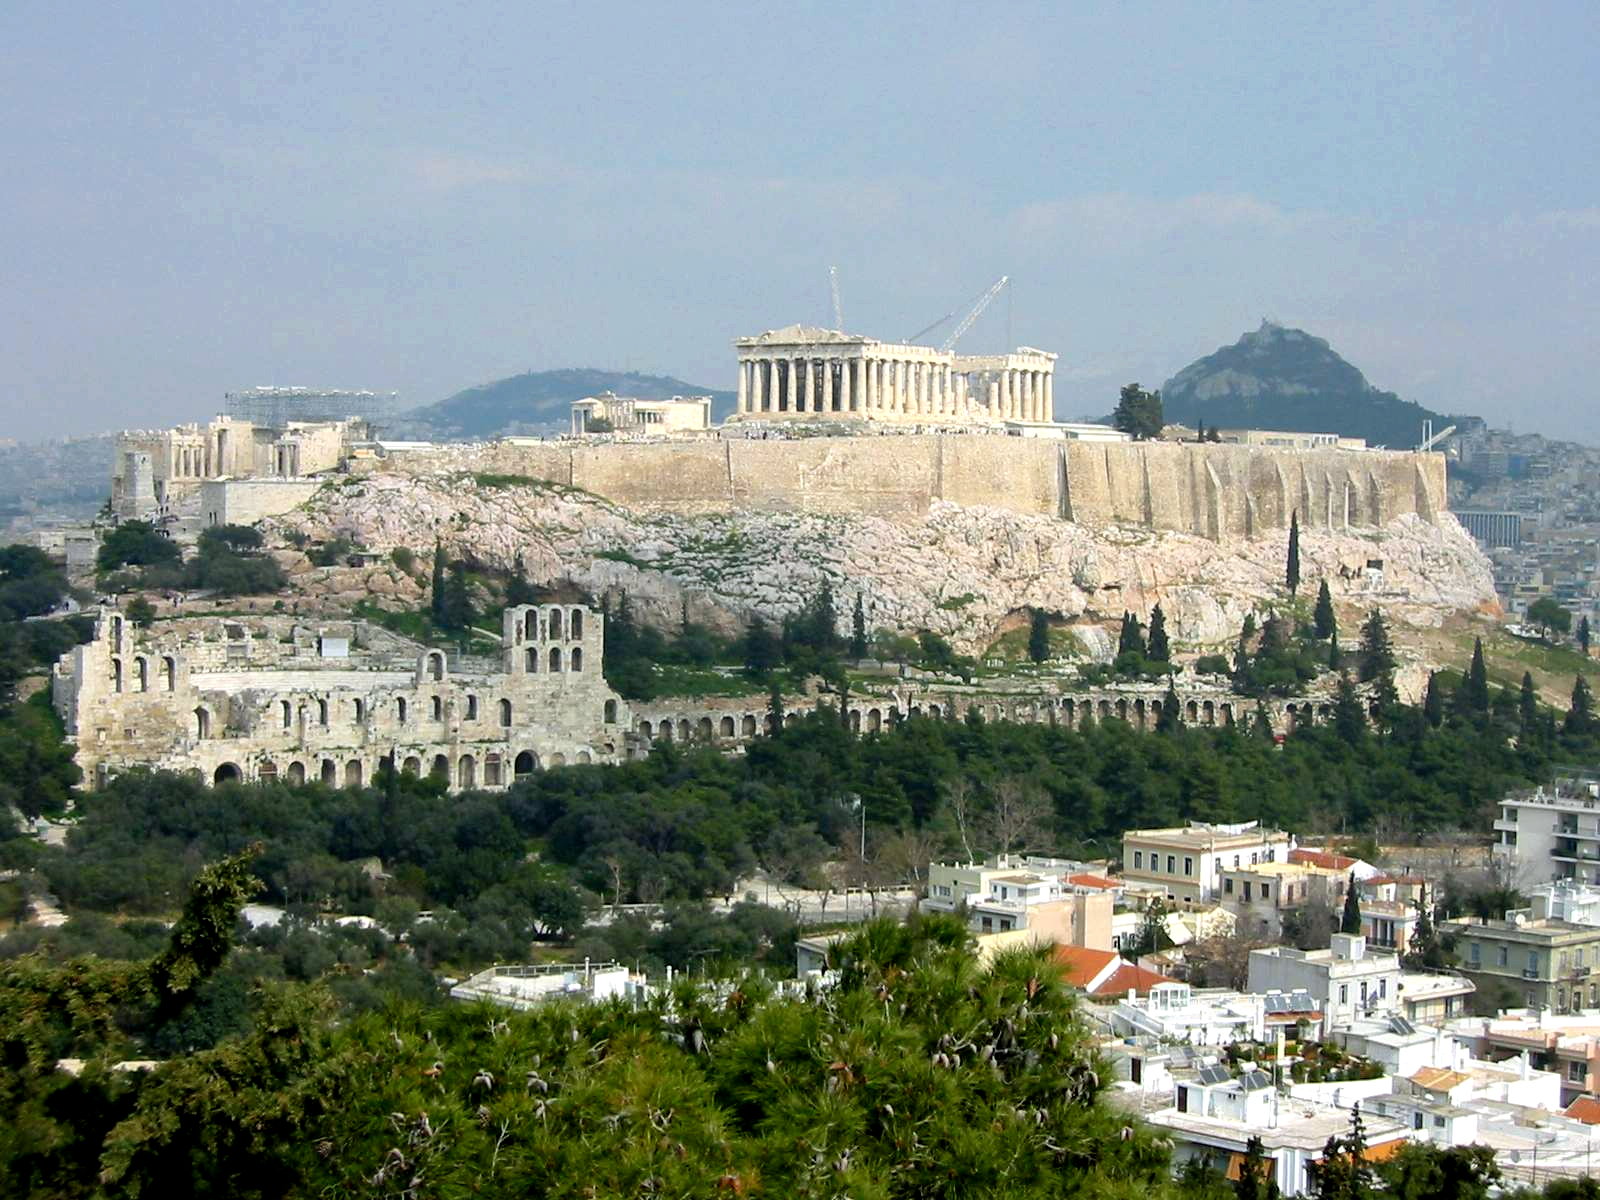 http://dic.academic.ru/pictures/wiki/files/65/Athens_Acropolis.jpg